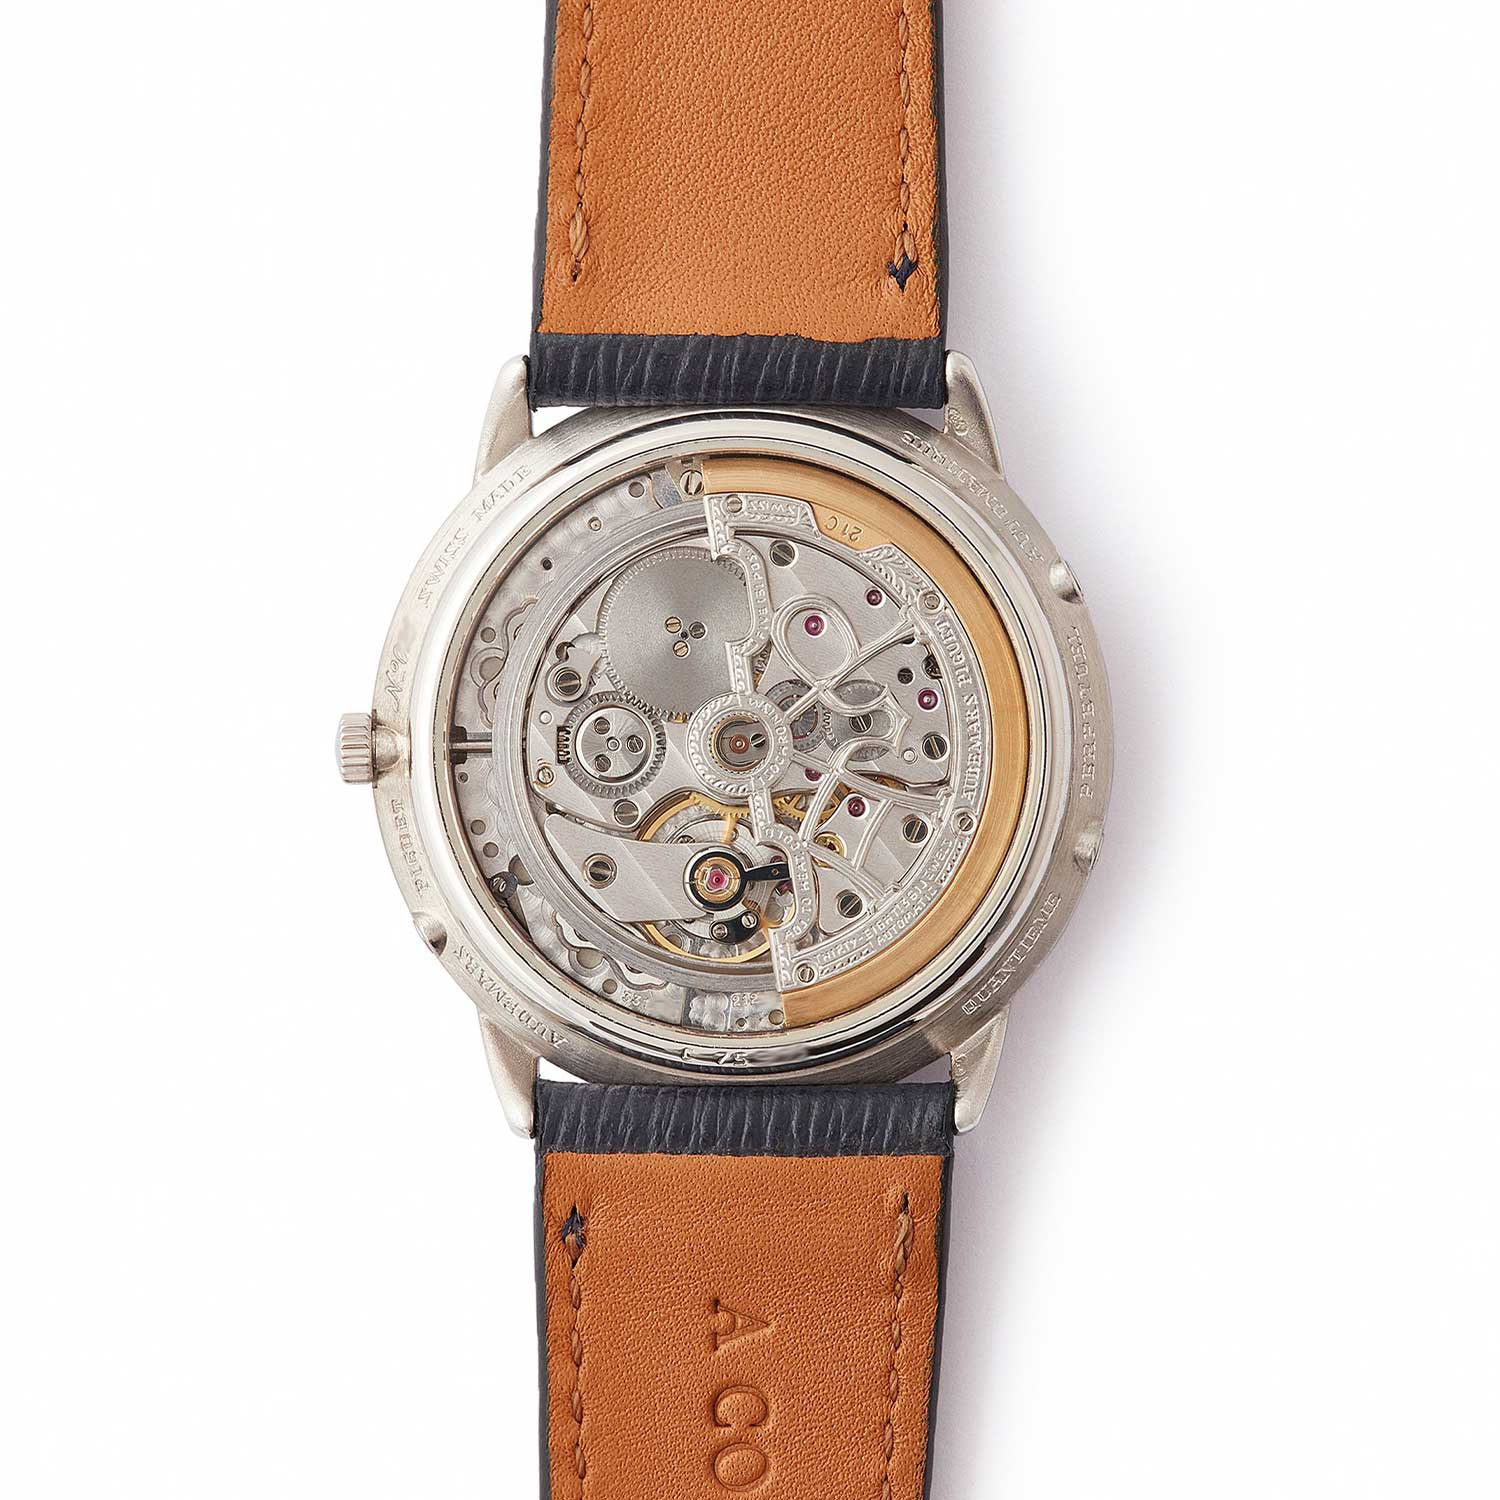 The 25661PT had a display caseback showing off an ornately decorated version of the calibre 2120/2800; the present watch was listed on A Collected Man some time ago (Image: acollectedman.com)